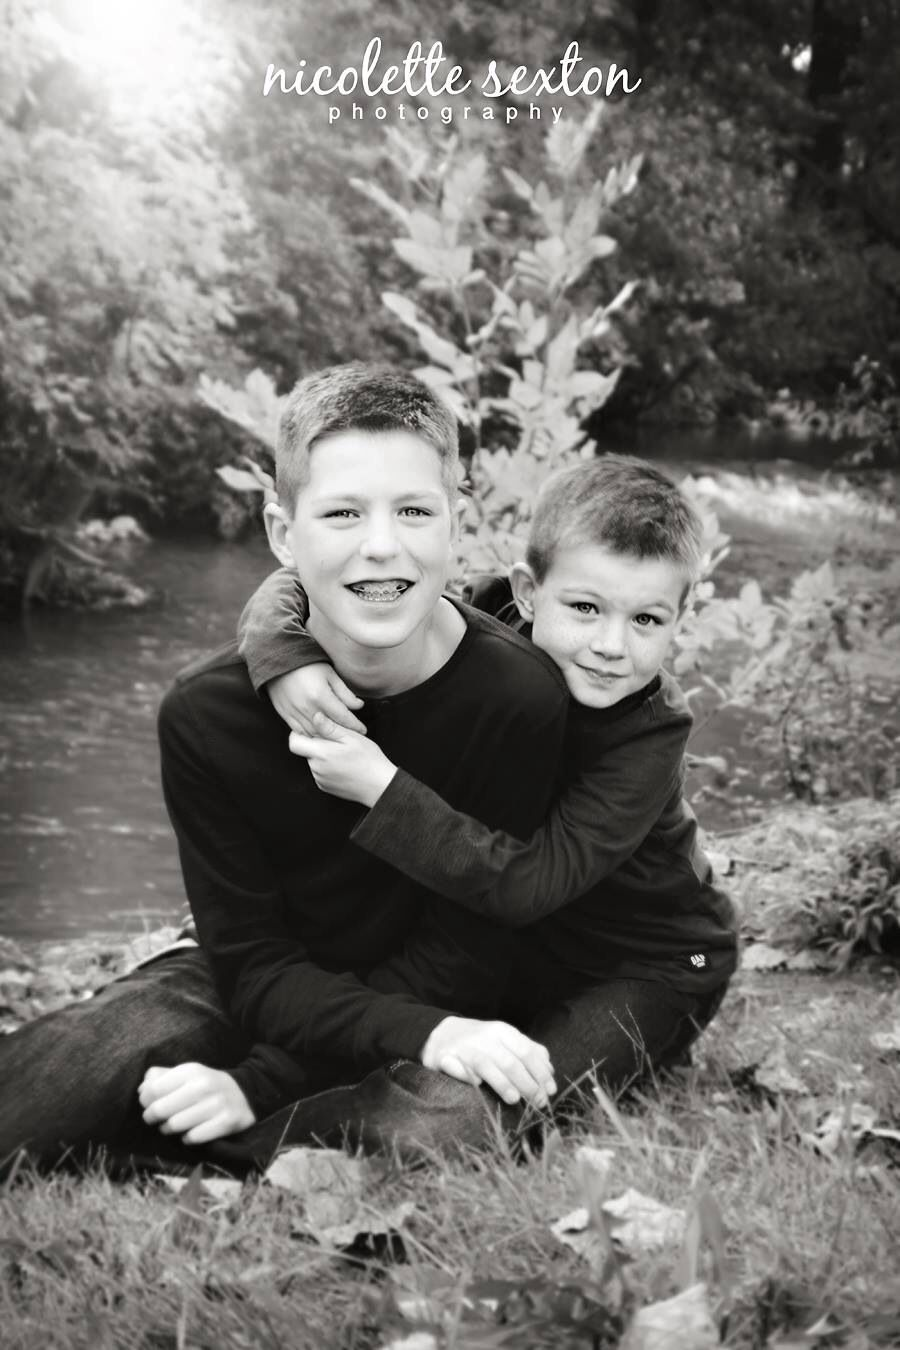 Brothers | Silbling Pose | Black and White | Ellis Family | September 2013 | Outdoor Family Photography